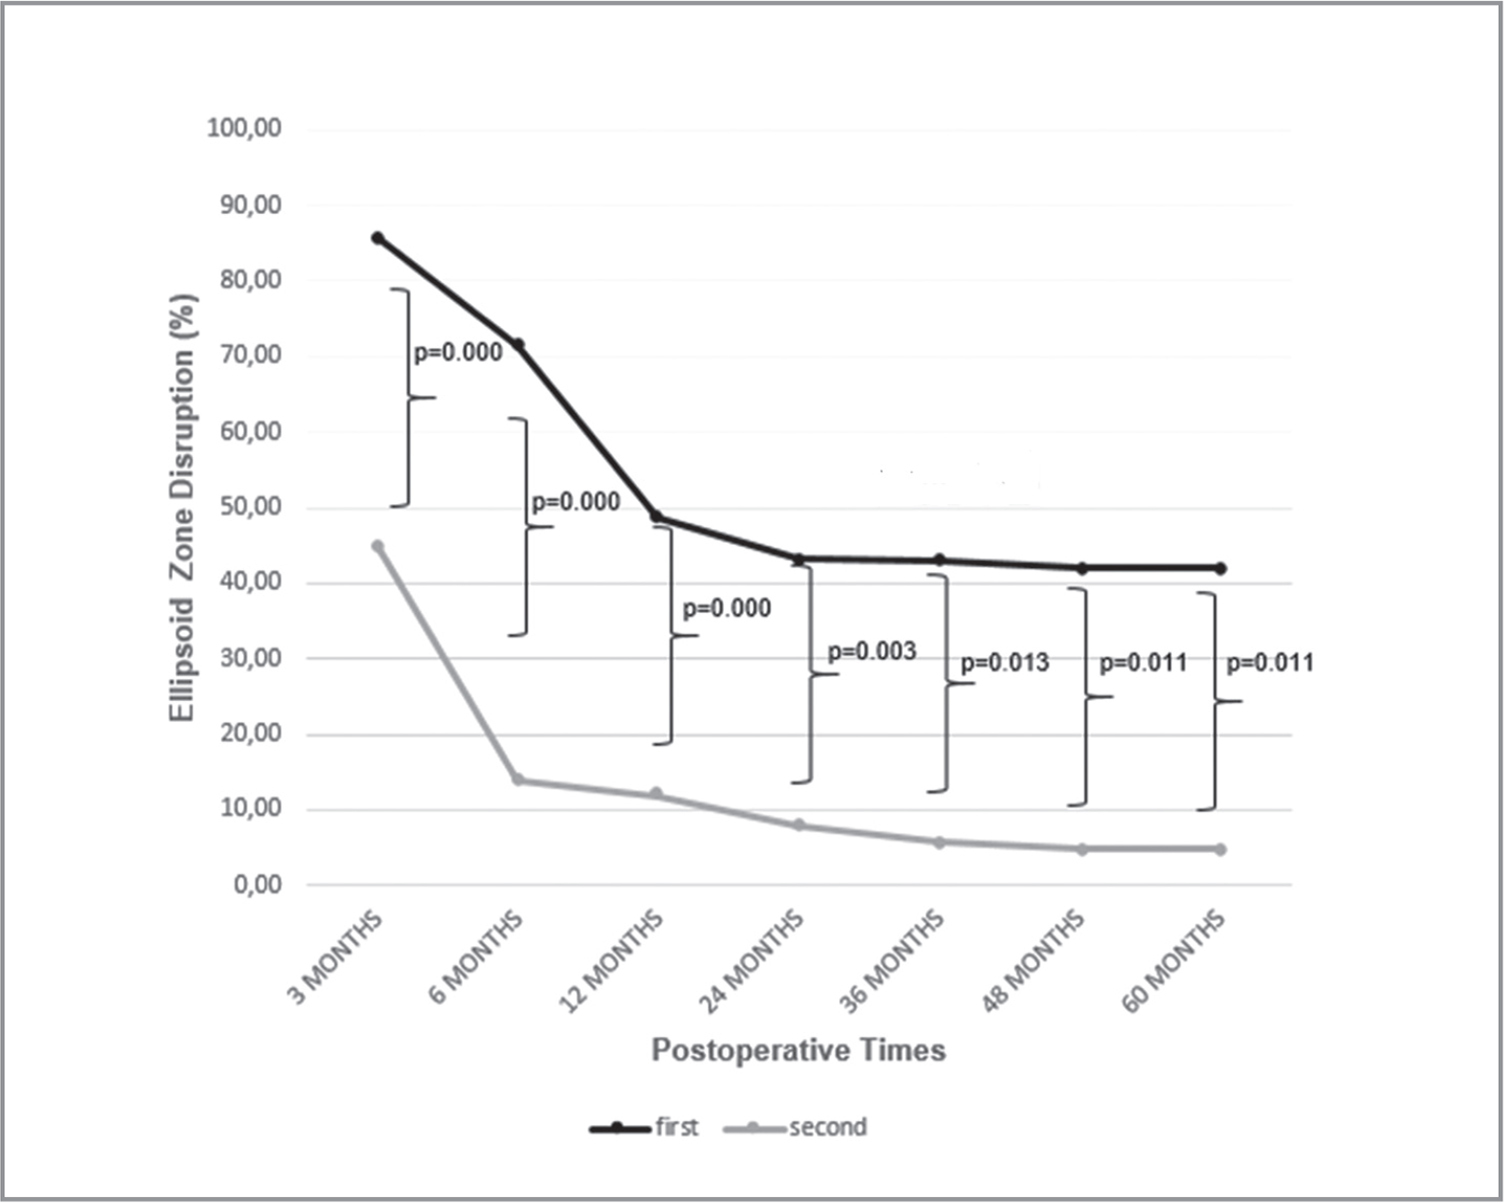 The rate of ellipsoid zone disruption at different postoperative times in first-operated and fellow eyes after surgery.